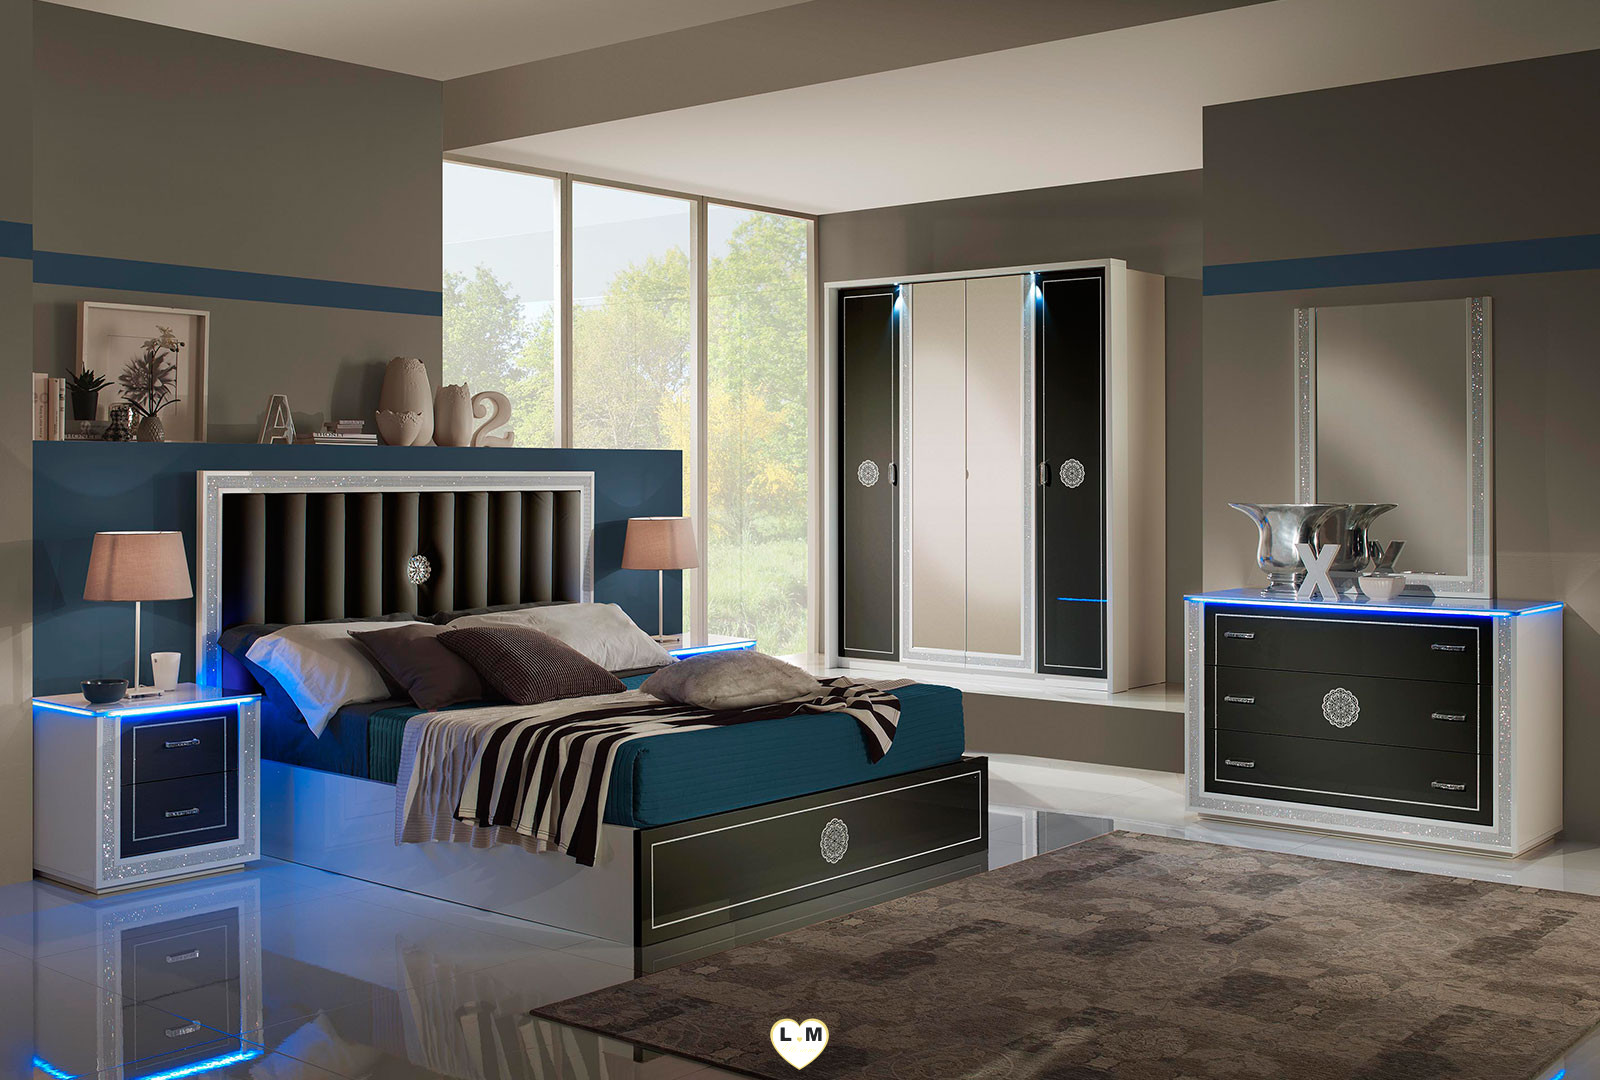 baccara laque noir et blanc ensemble chambre a coucher. Black Bedroom Furniture Sets. Home Design Ideas